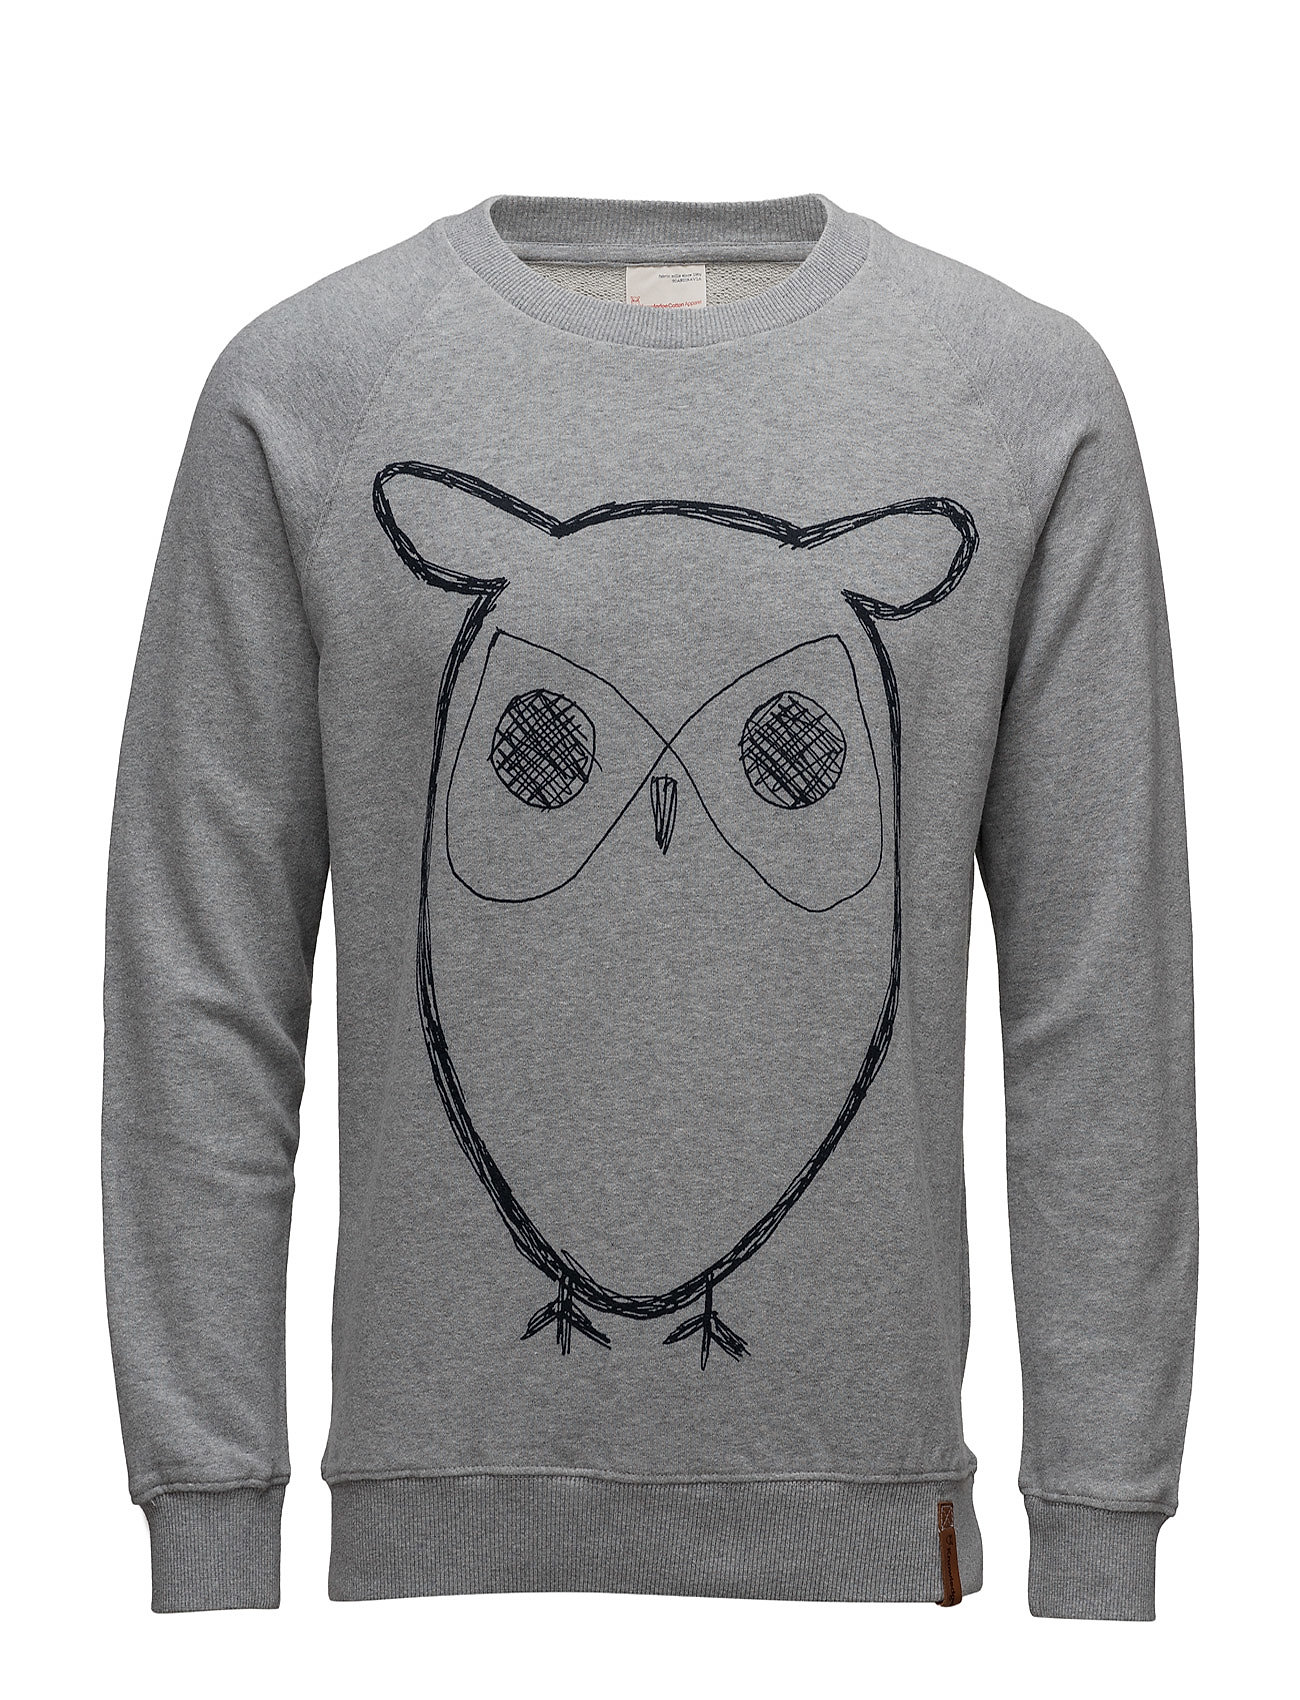 Knowledge Cotton Apparel Sweat Shirt With Owl Print - GOTS/V - GREY MELANGE